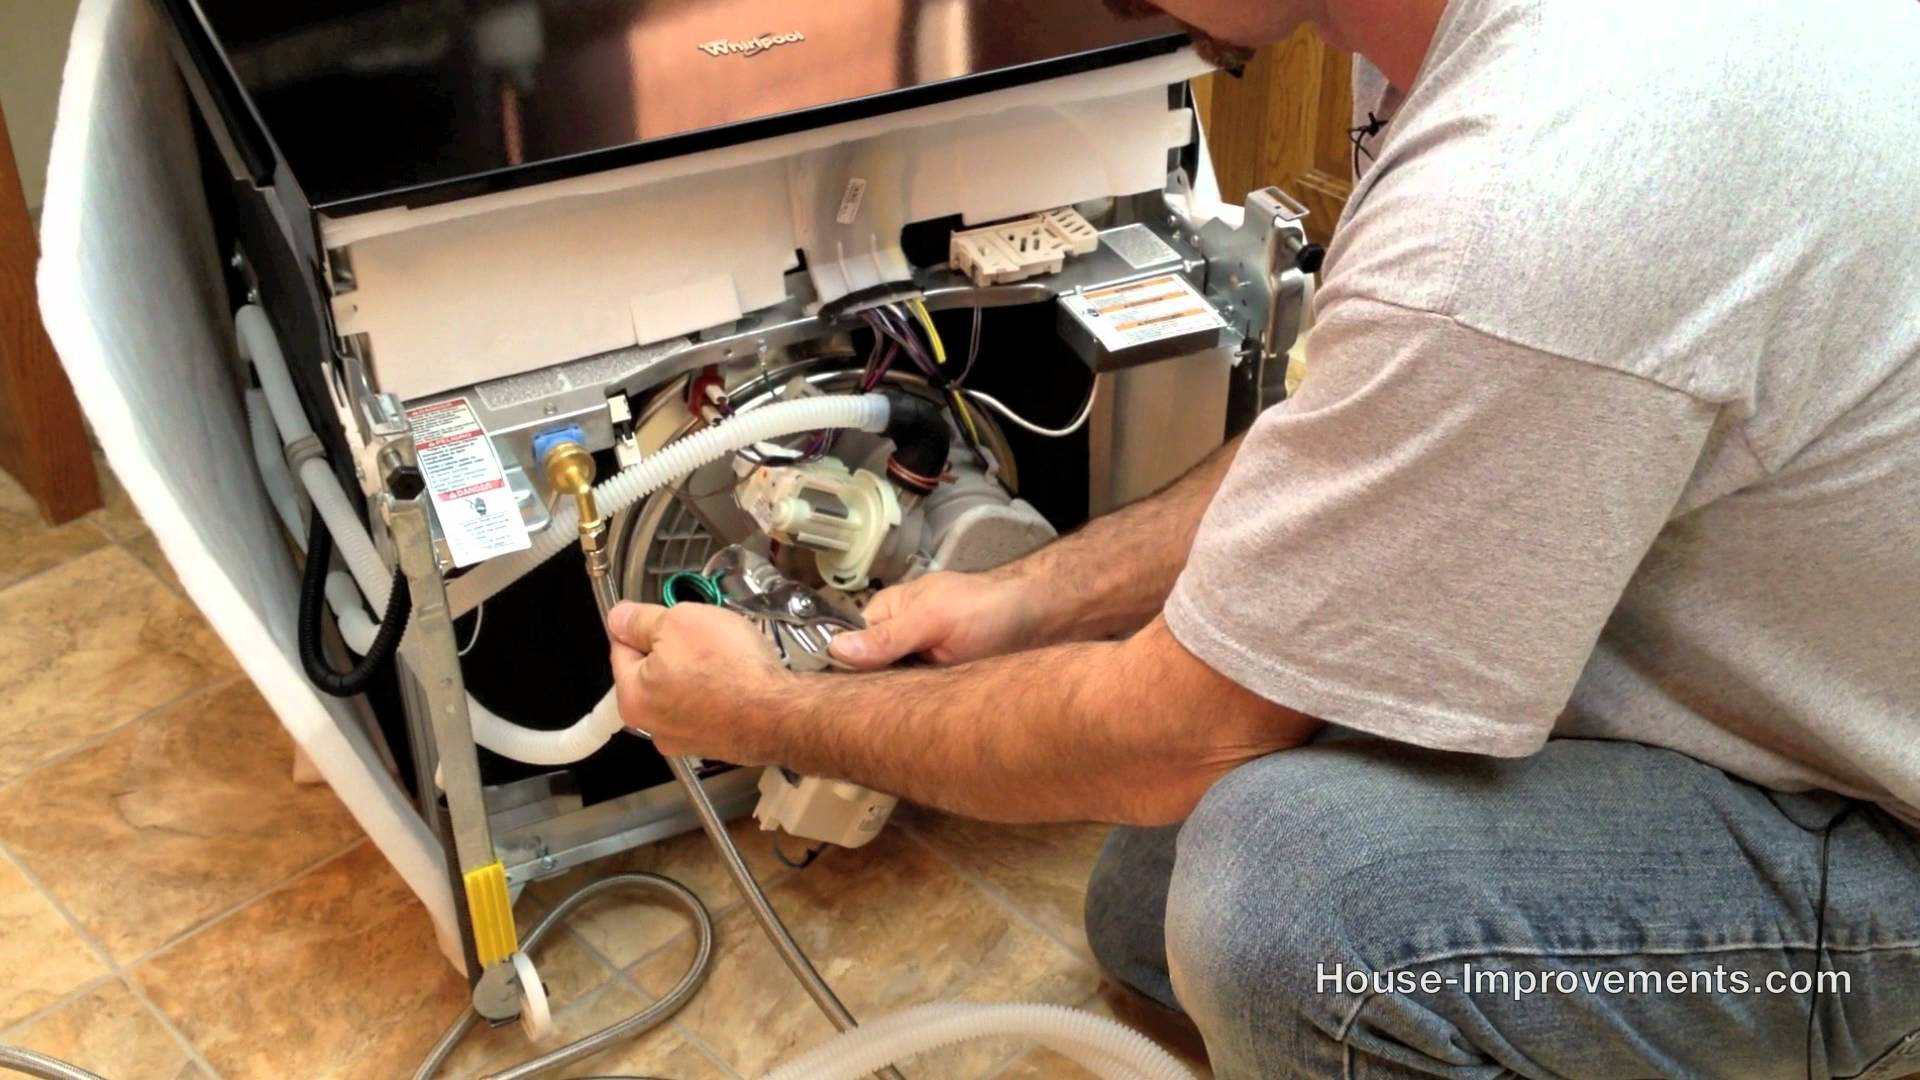 DIY Dishwasher Replacement